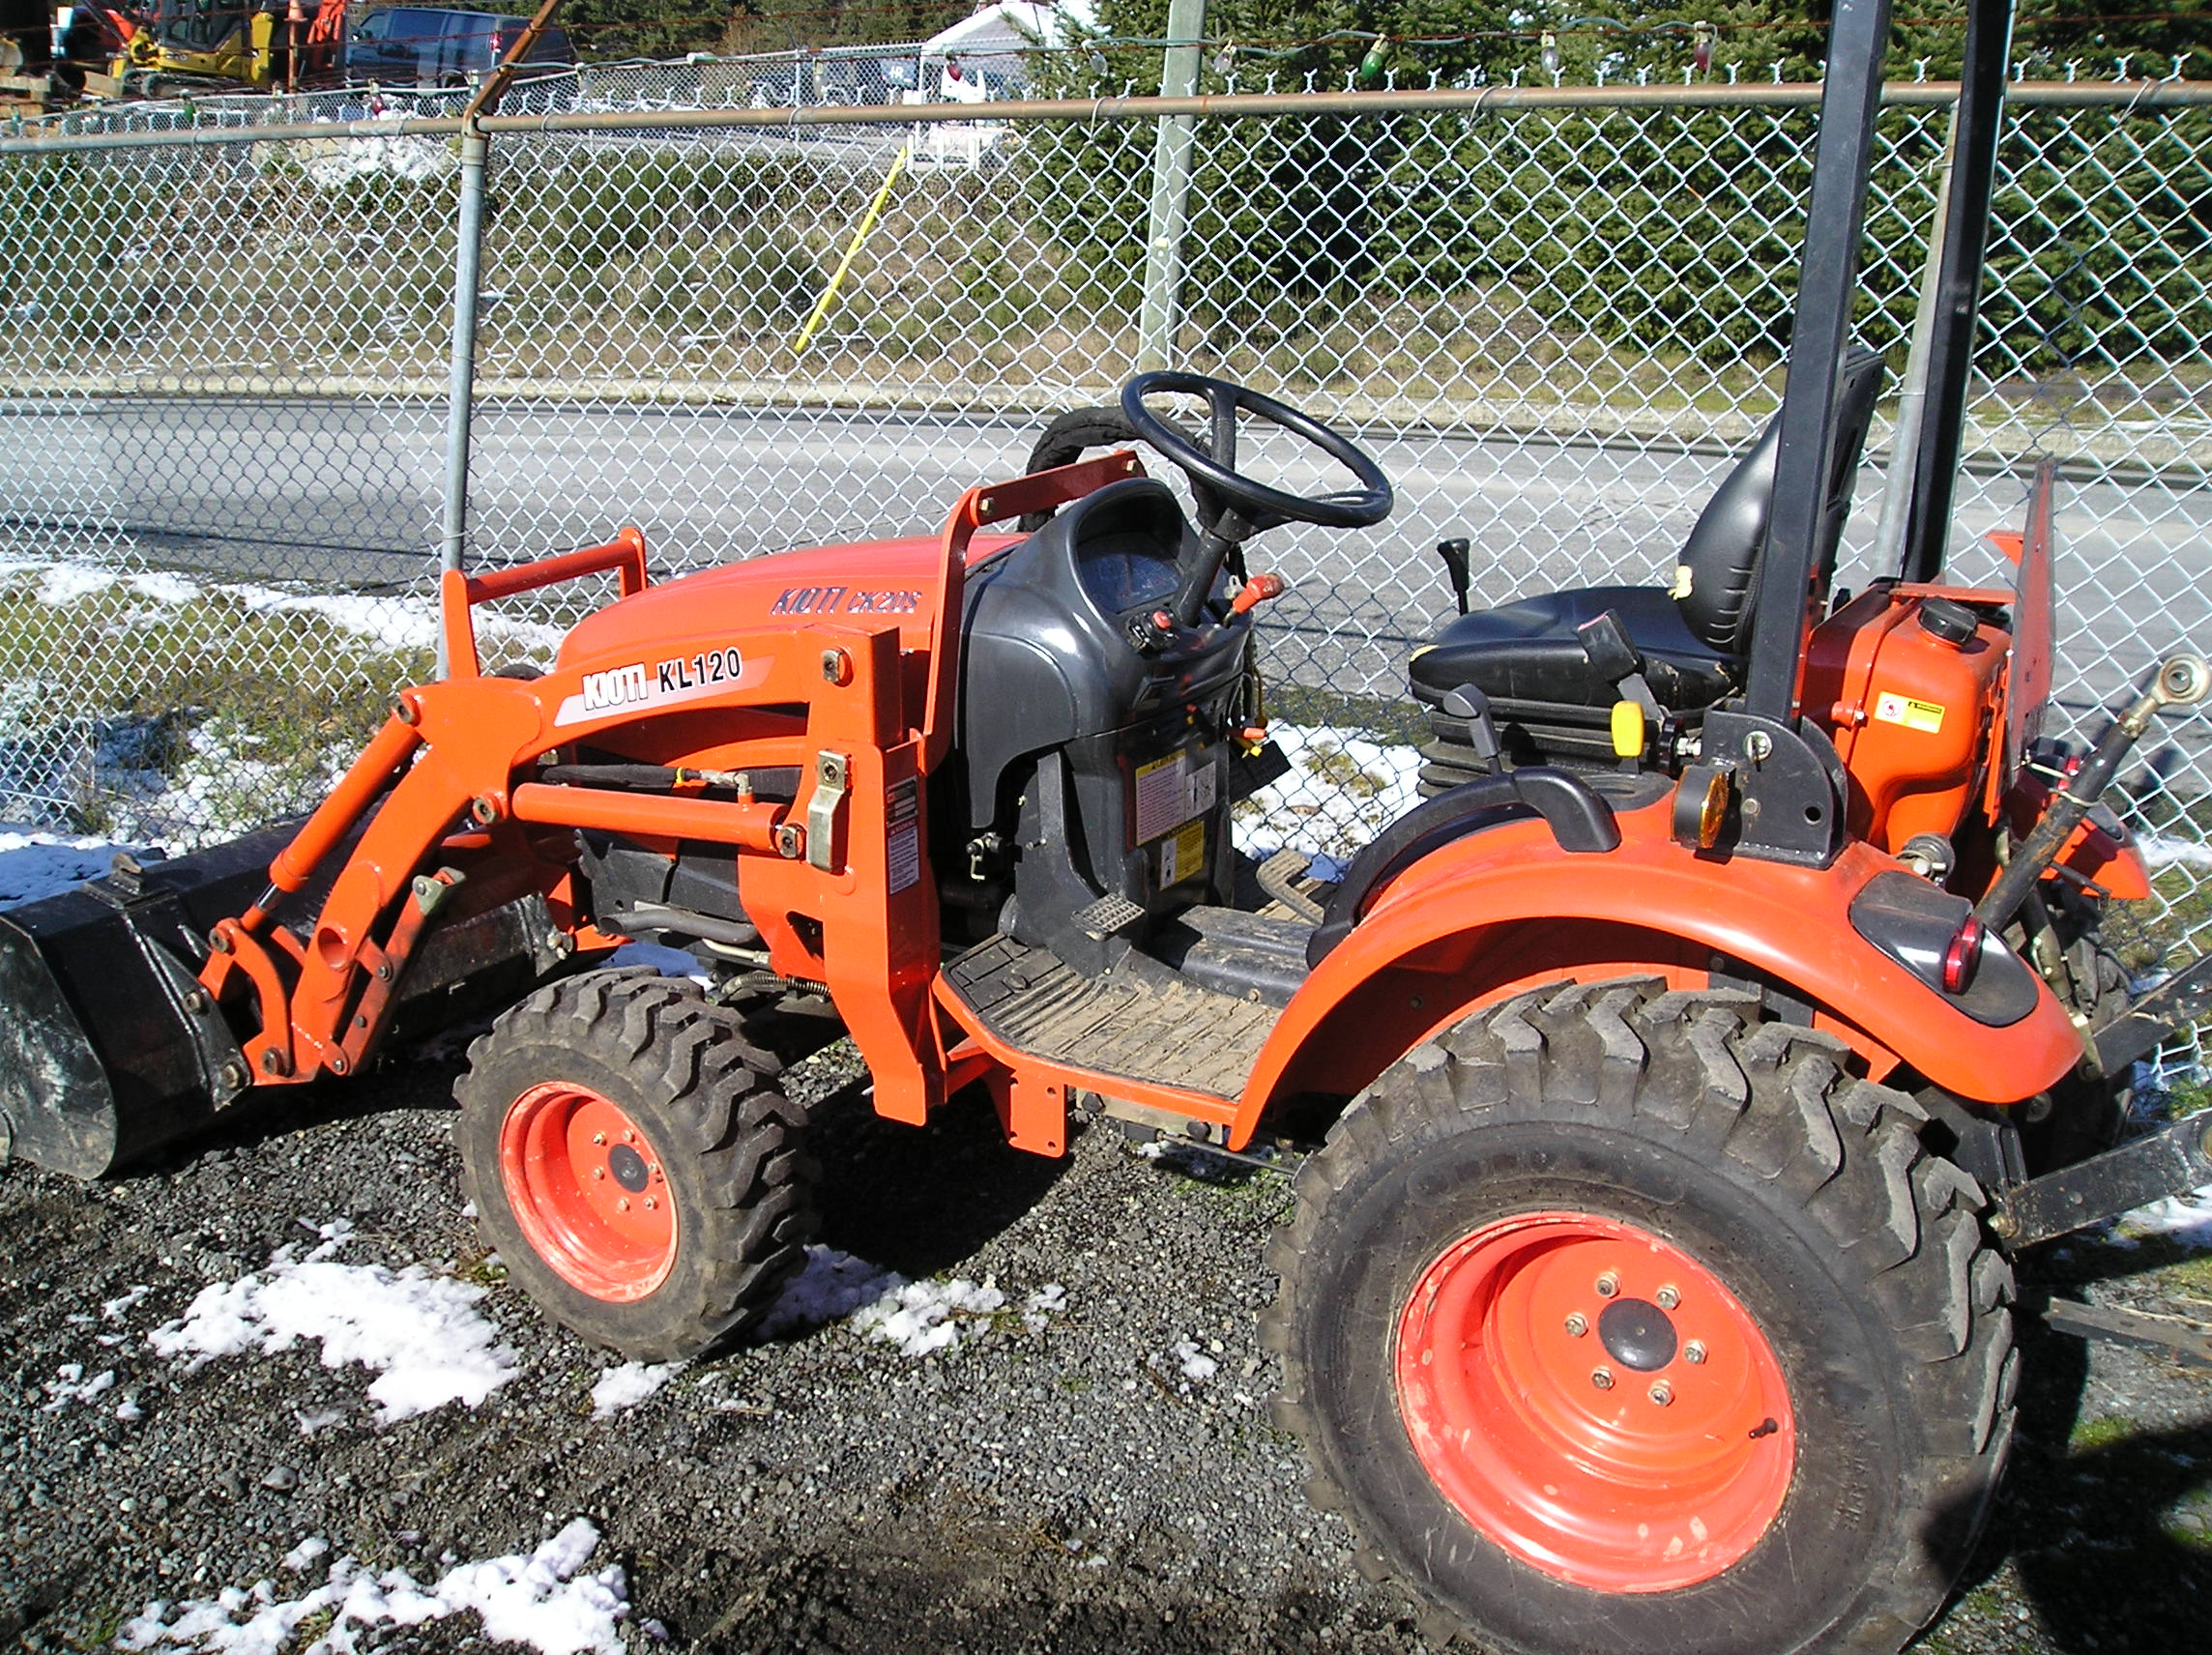 Used Tractor Tires For Sale >> kioti Ck20 hst tractor loader - Harbour City Equipment